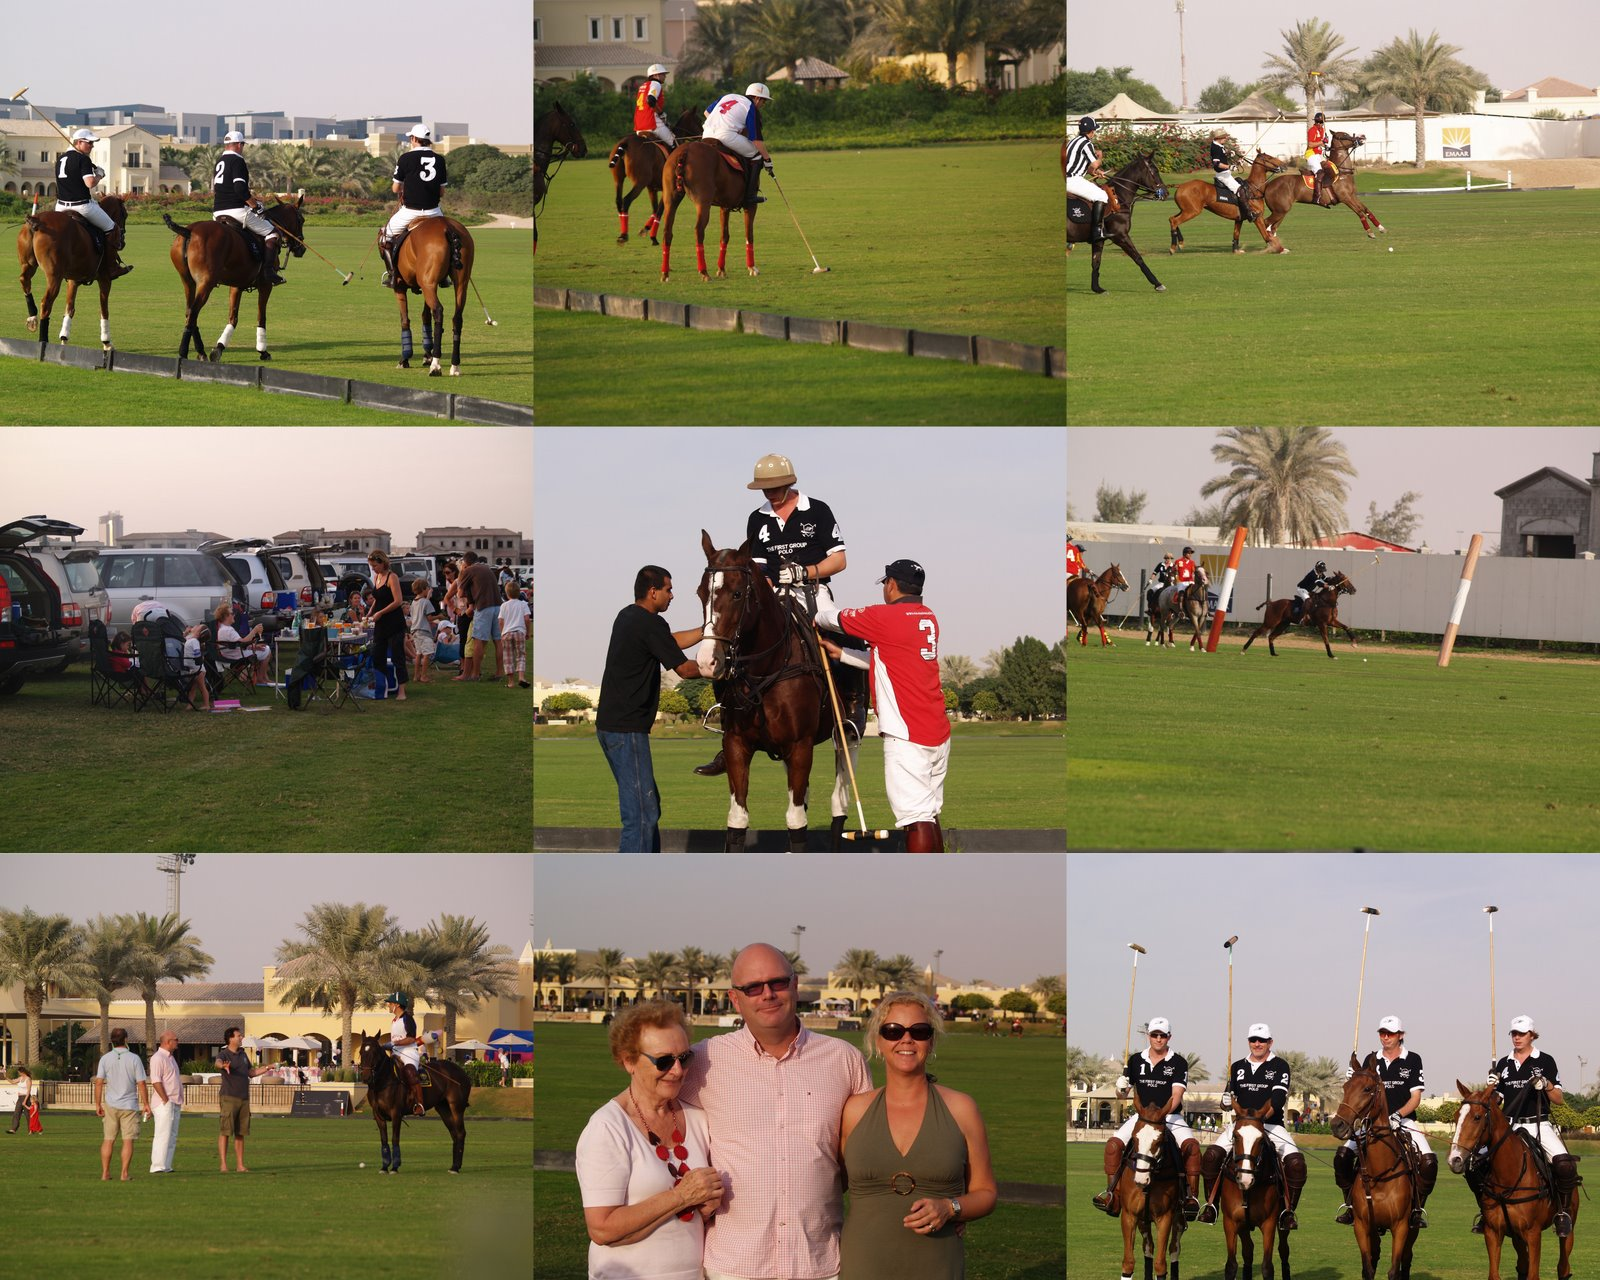 Cocktail Stoeltjes Go Dubai!: Picknick At The Polo